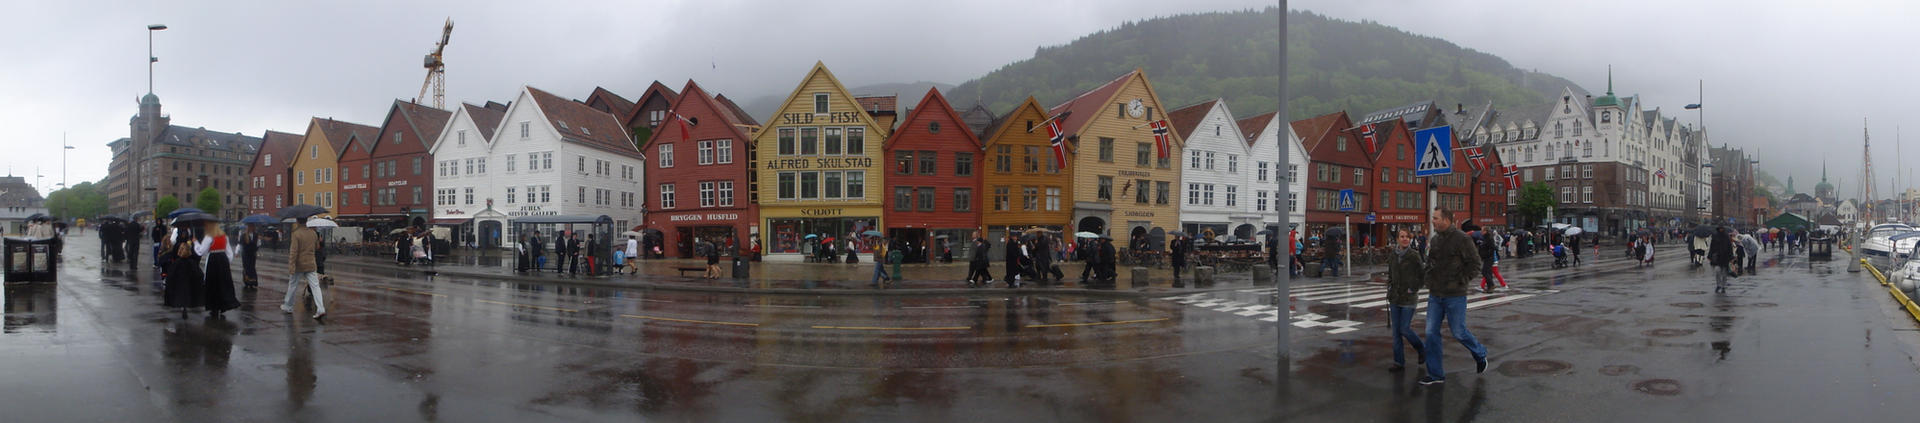 Typical Bergen Weather by ChimeraDragonfang